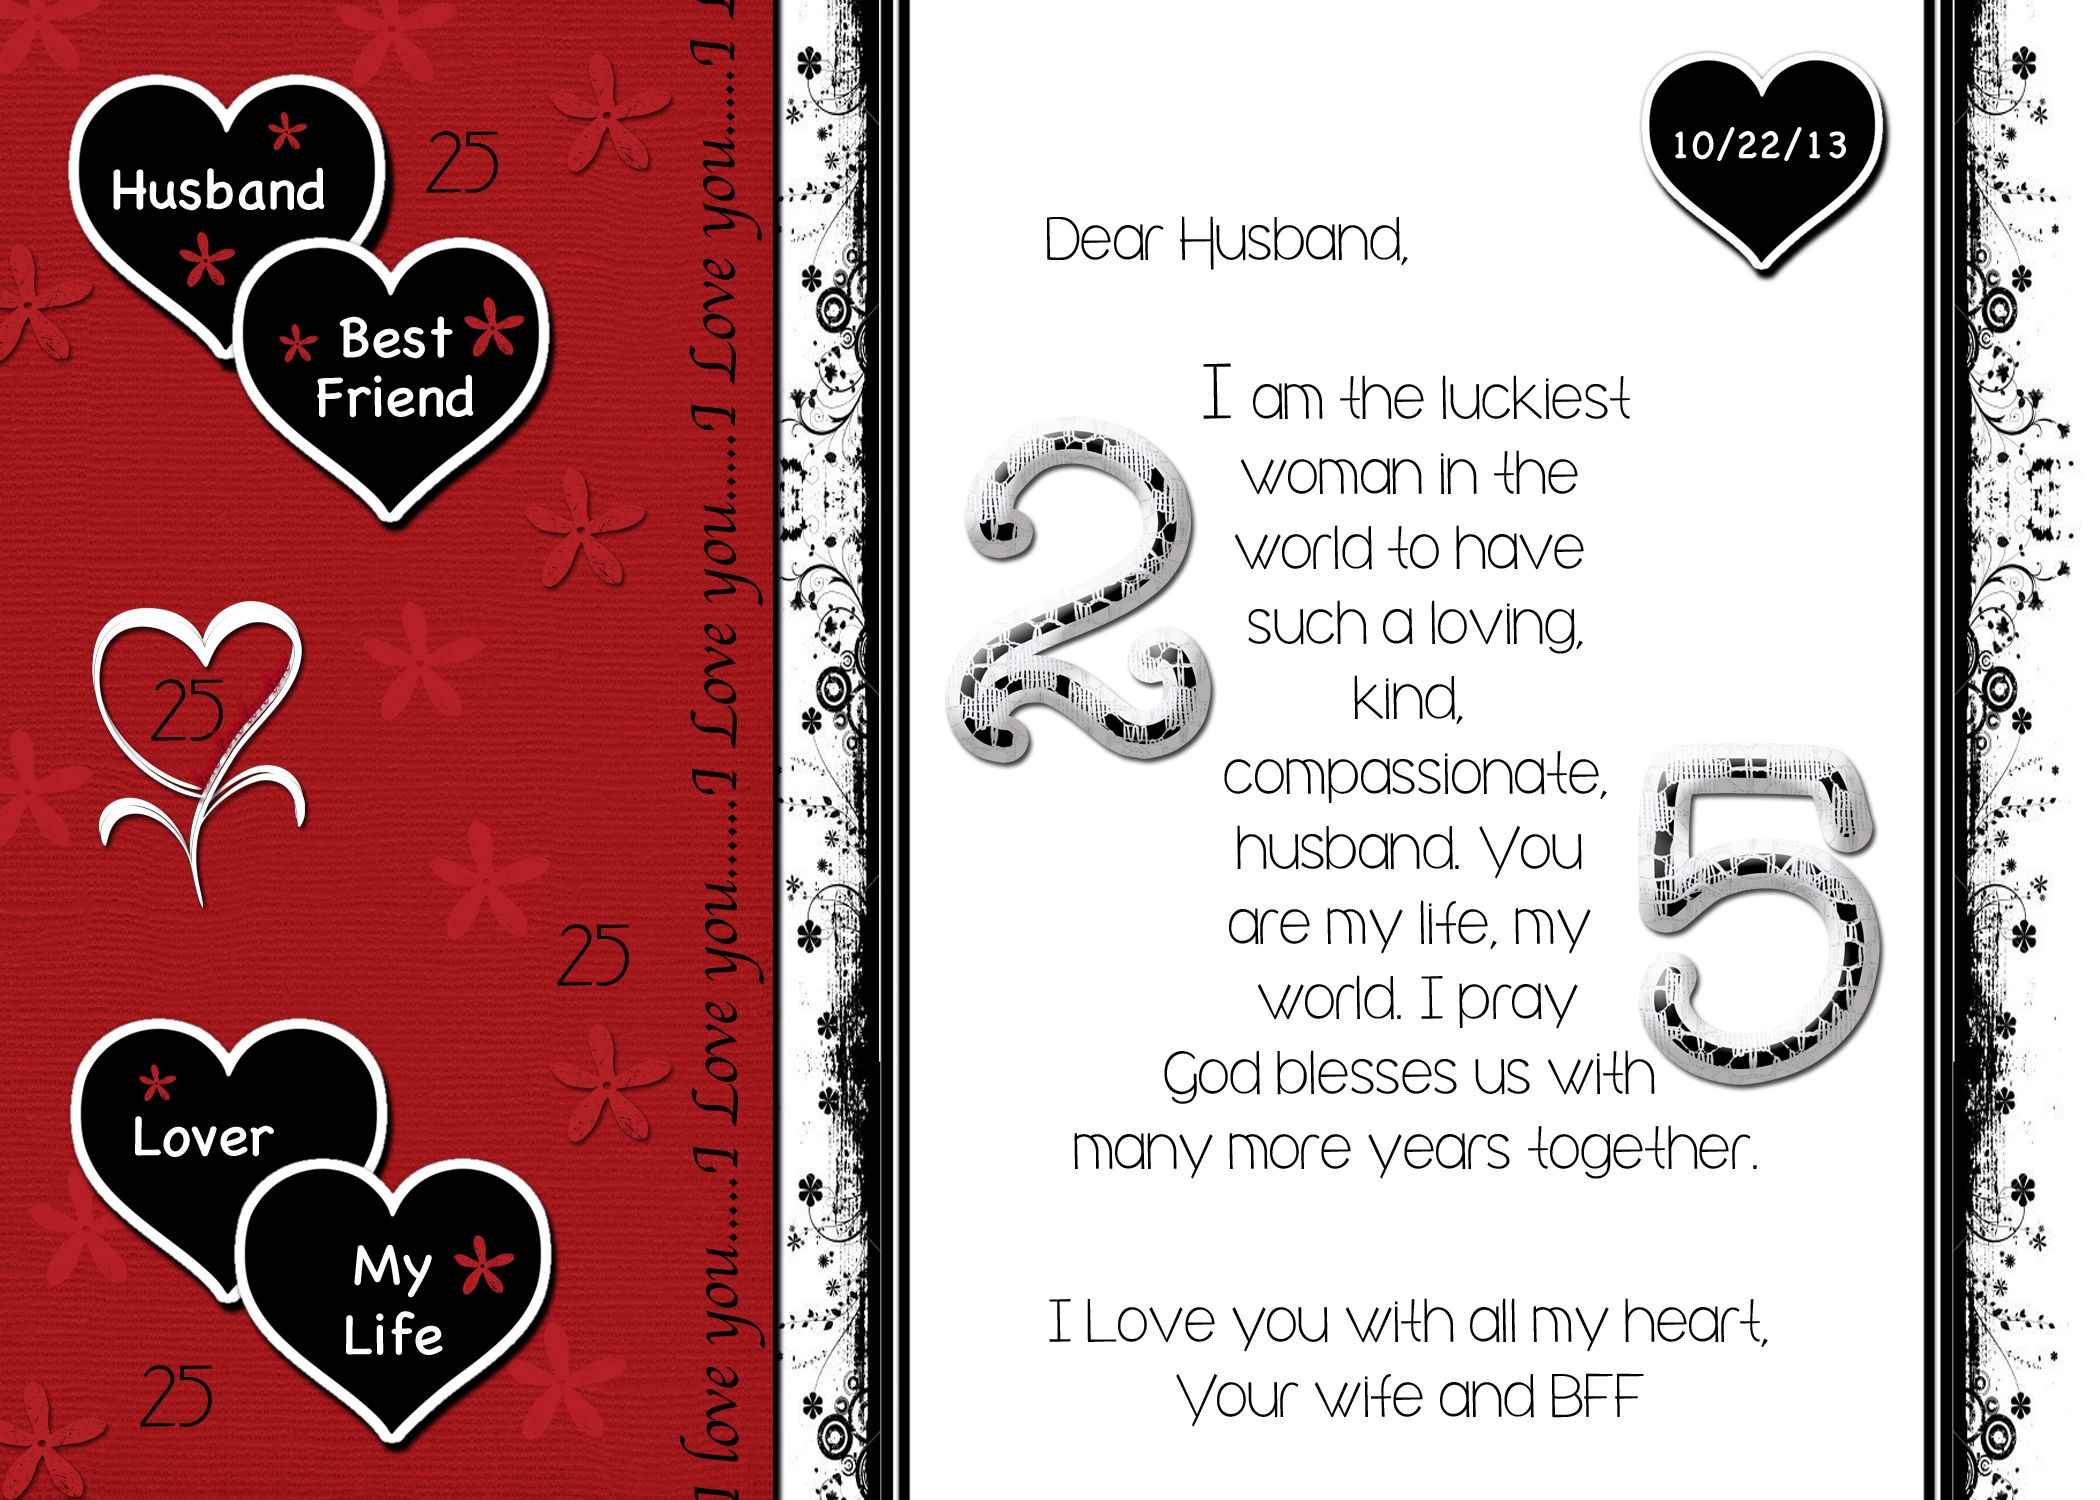 Homemade Anniversary Ideas For Husband: Homemade Anniversary Cards For Him